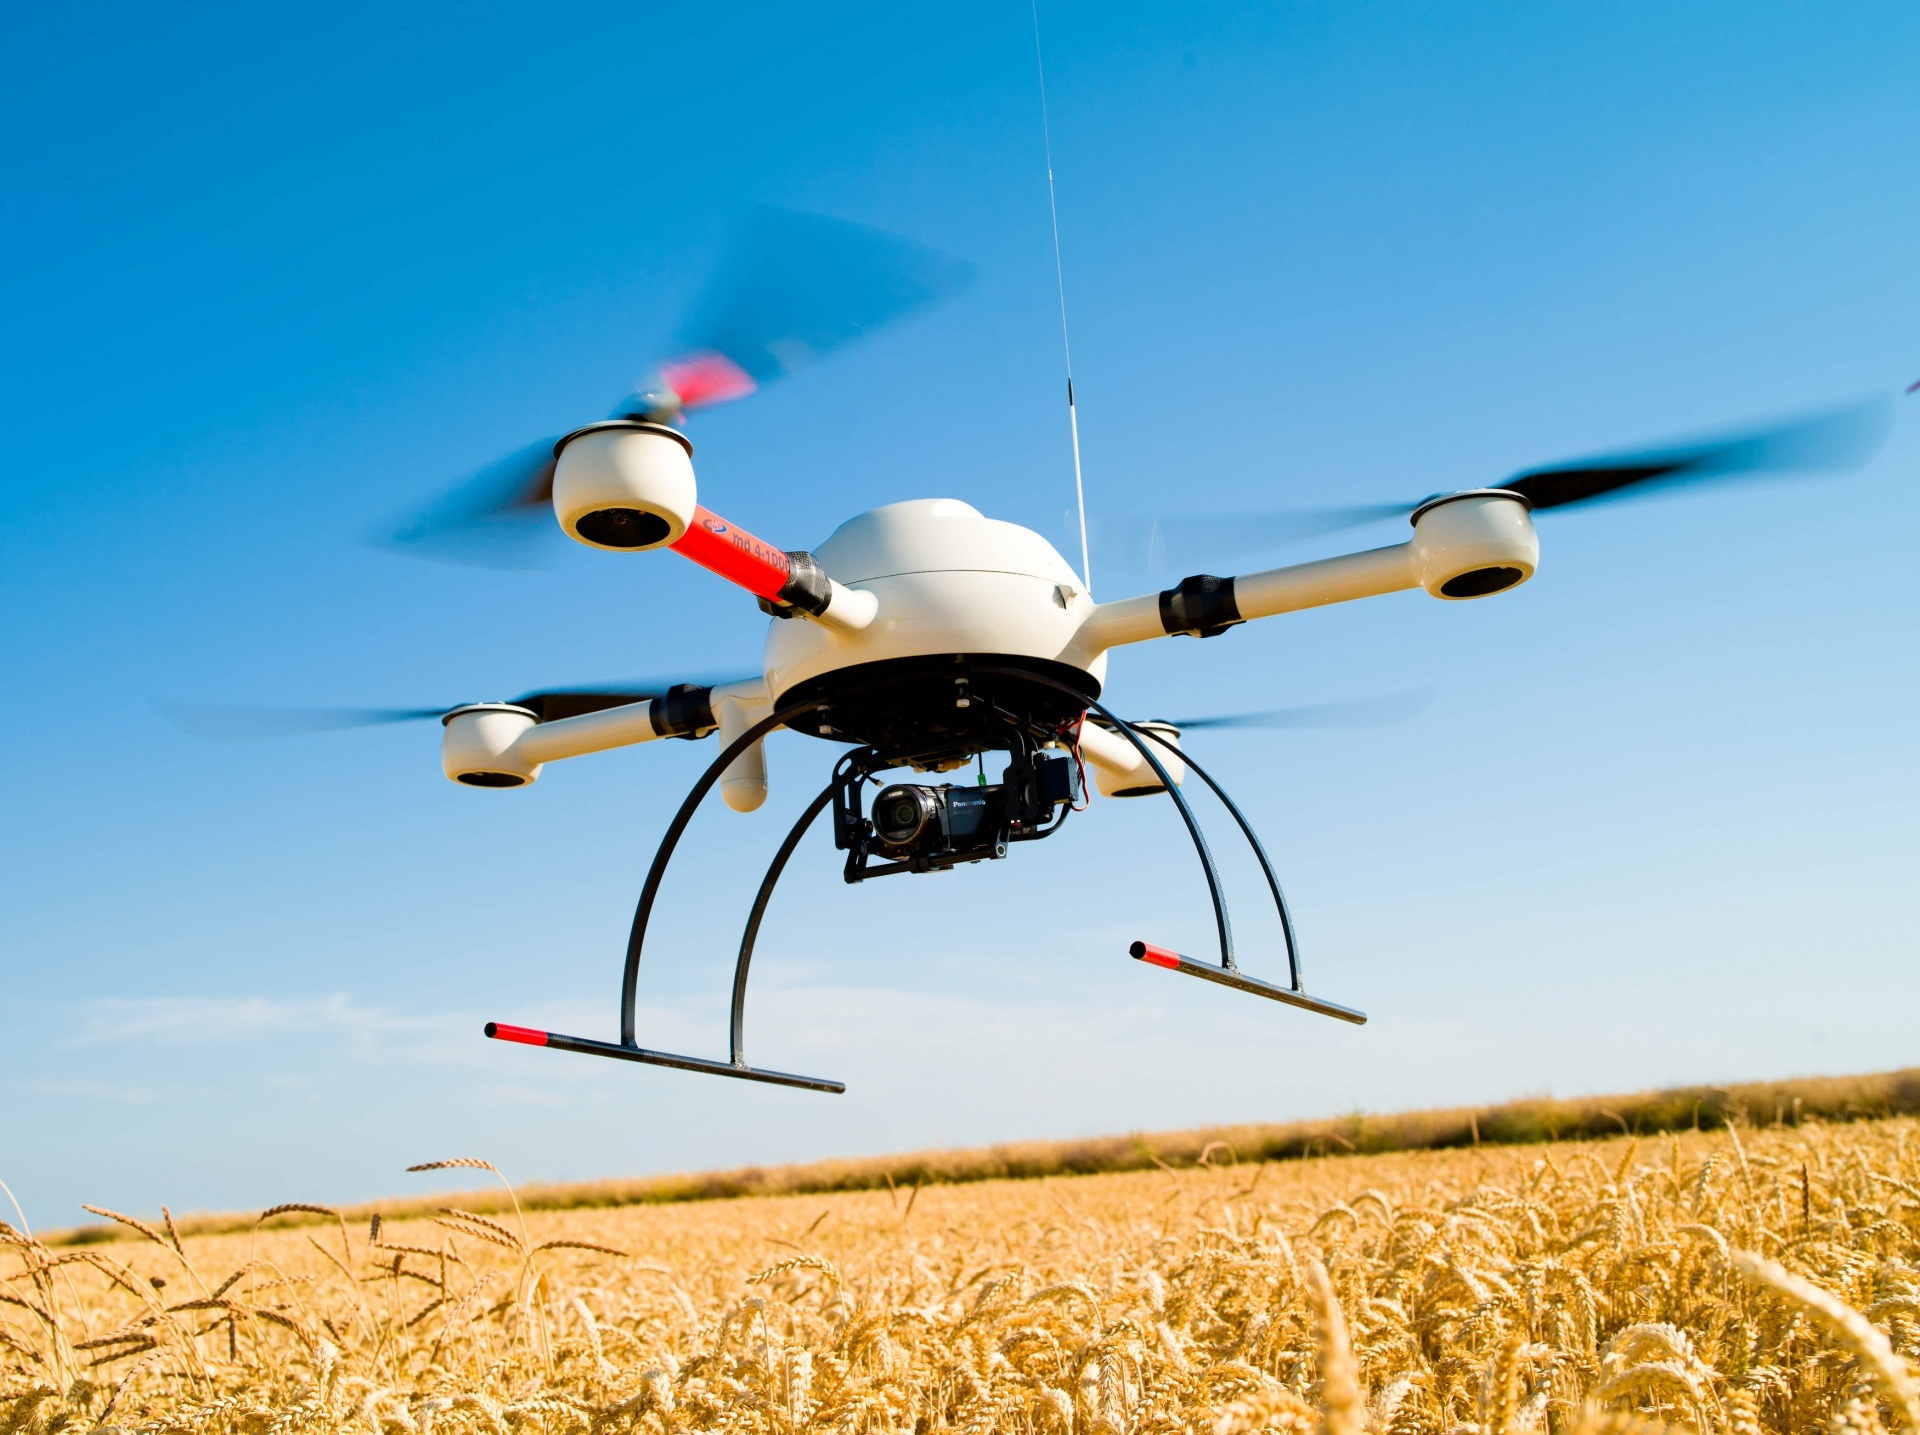 farming drones with Die Digitalisierung Der Landwirtschaft on Farming Agriculture Technology additionally Chinas Mega Farm For 100000 Cows also Drones In Agriculture To Be Or Not To Be together with Inter  Things Iot Agriculture besides Aerial Mapping And Topographic Survey Of A Photovoltaic Solar Power Plant Guyana.